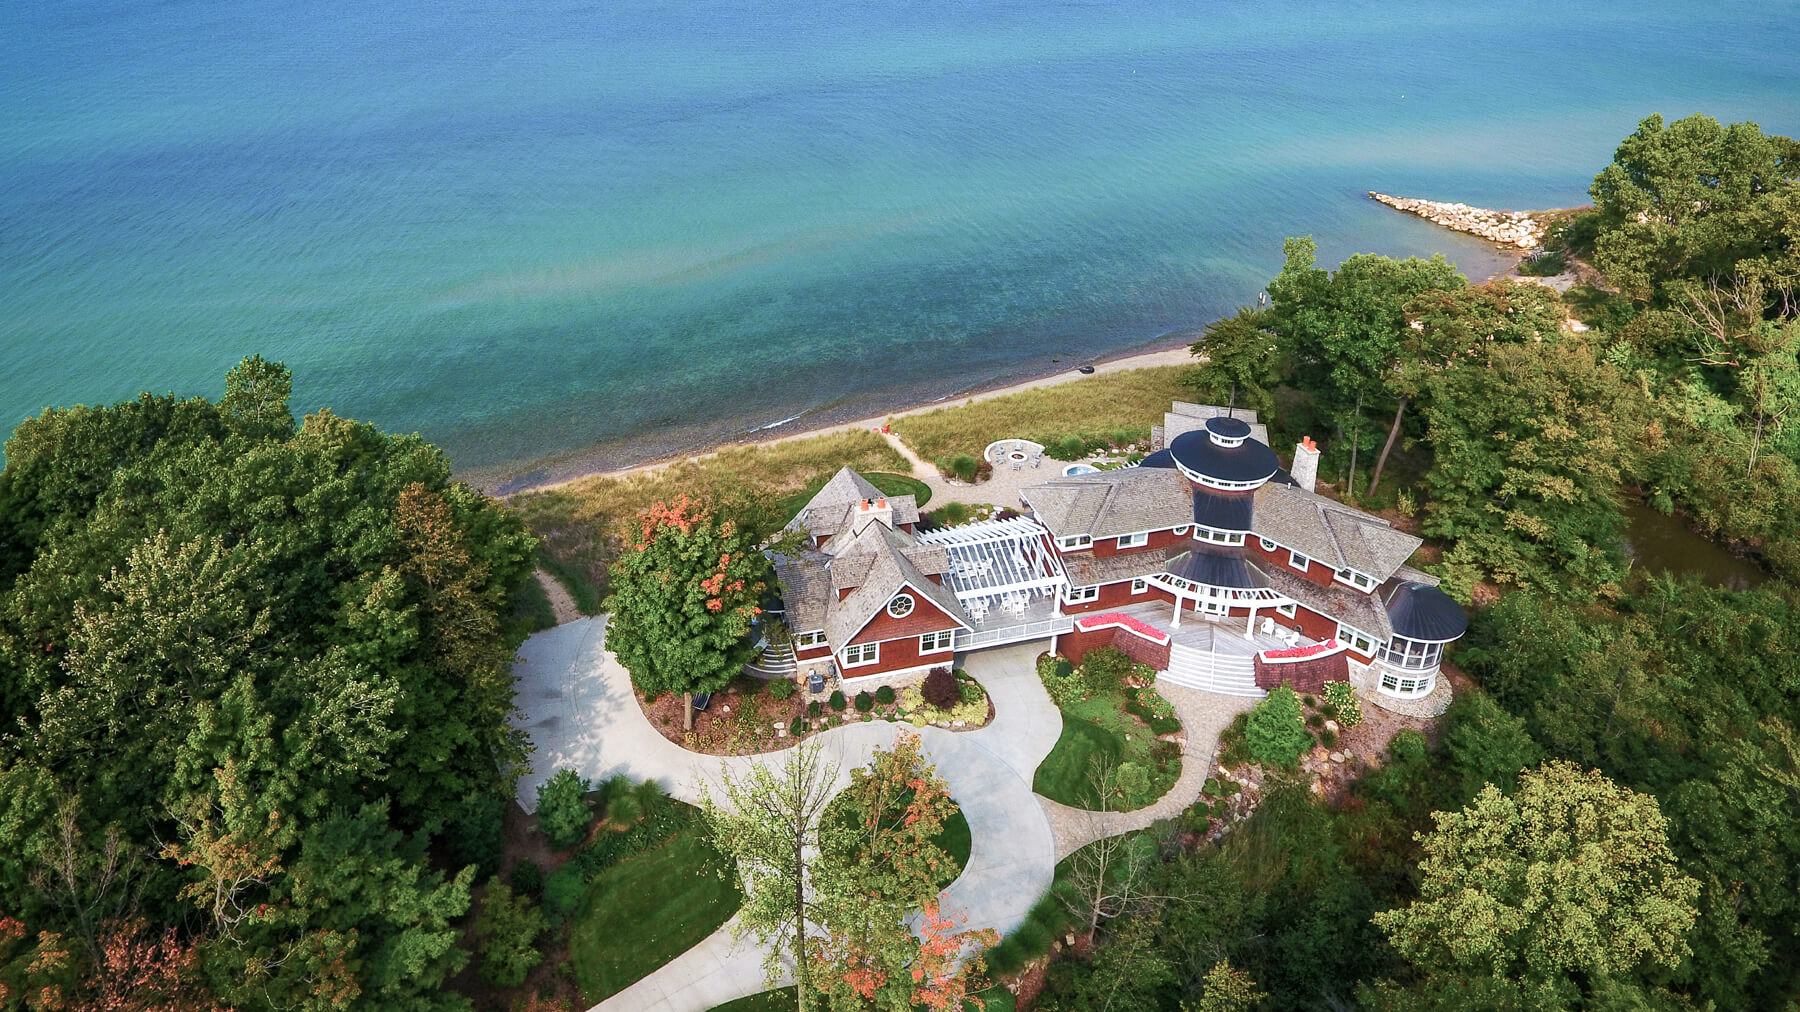 76776 Thornhouse - South Haven Township, Michigan - $5,499,000 USD